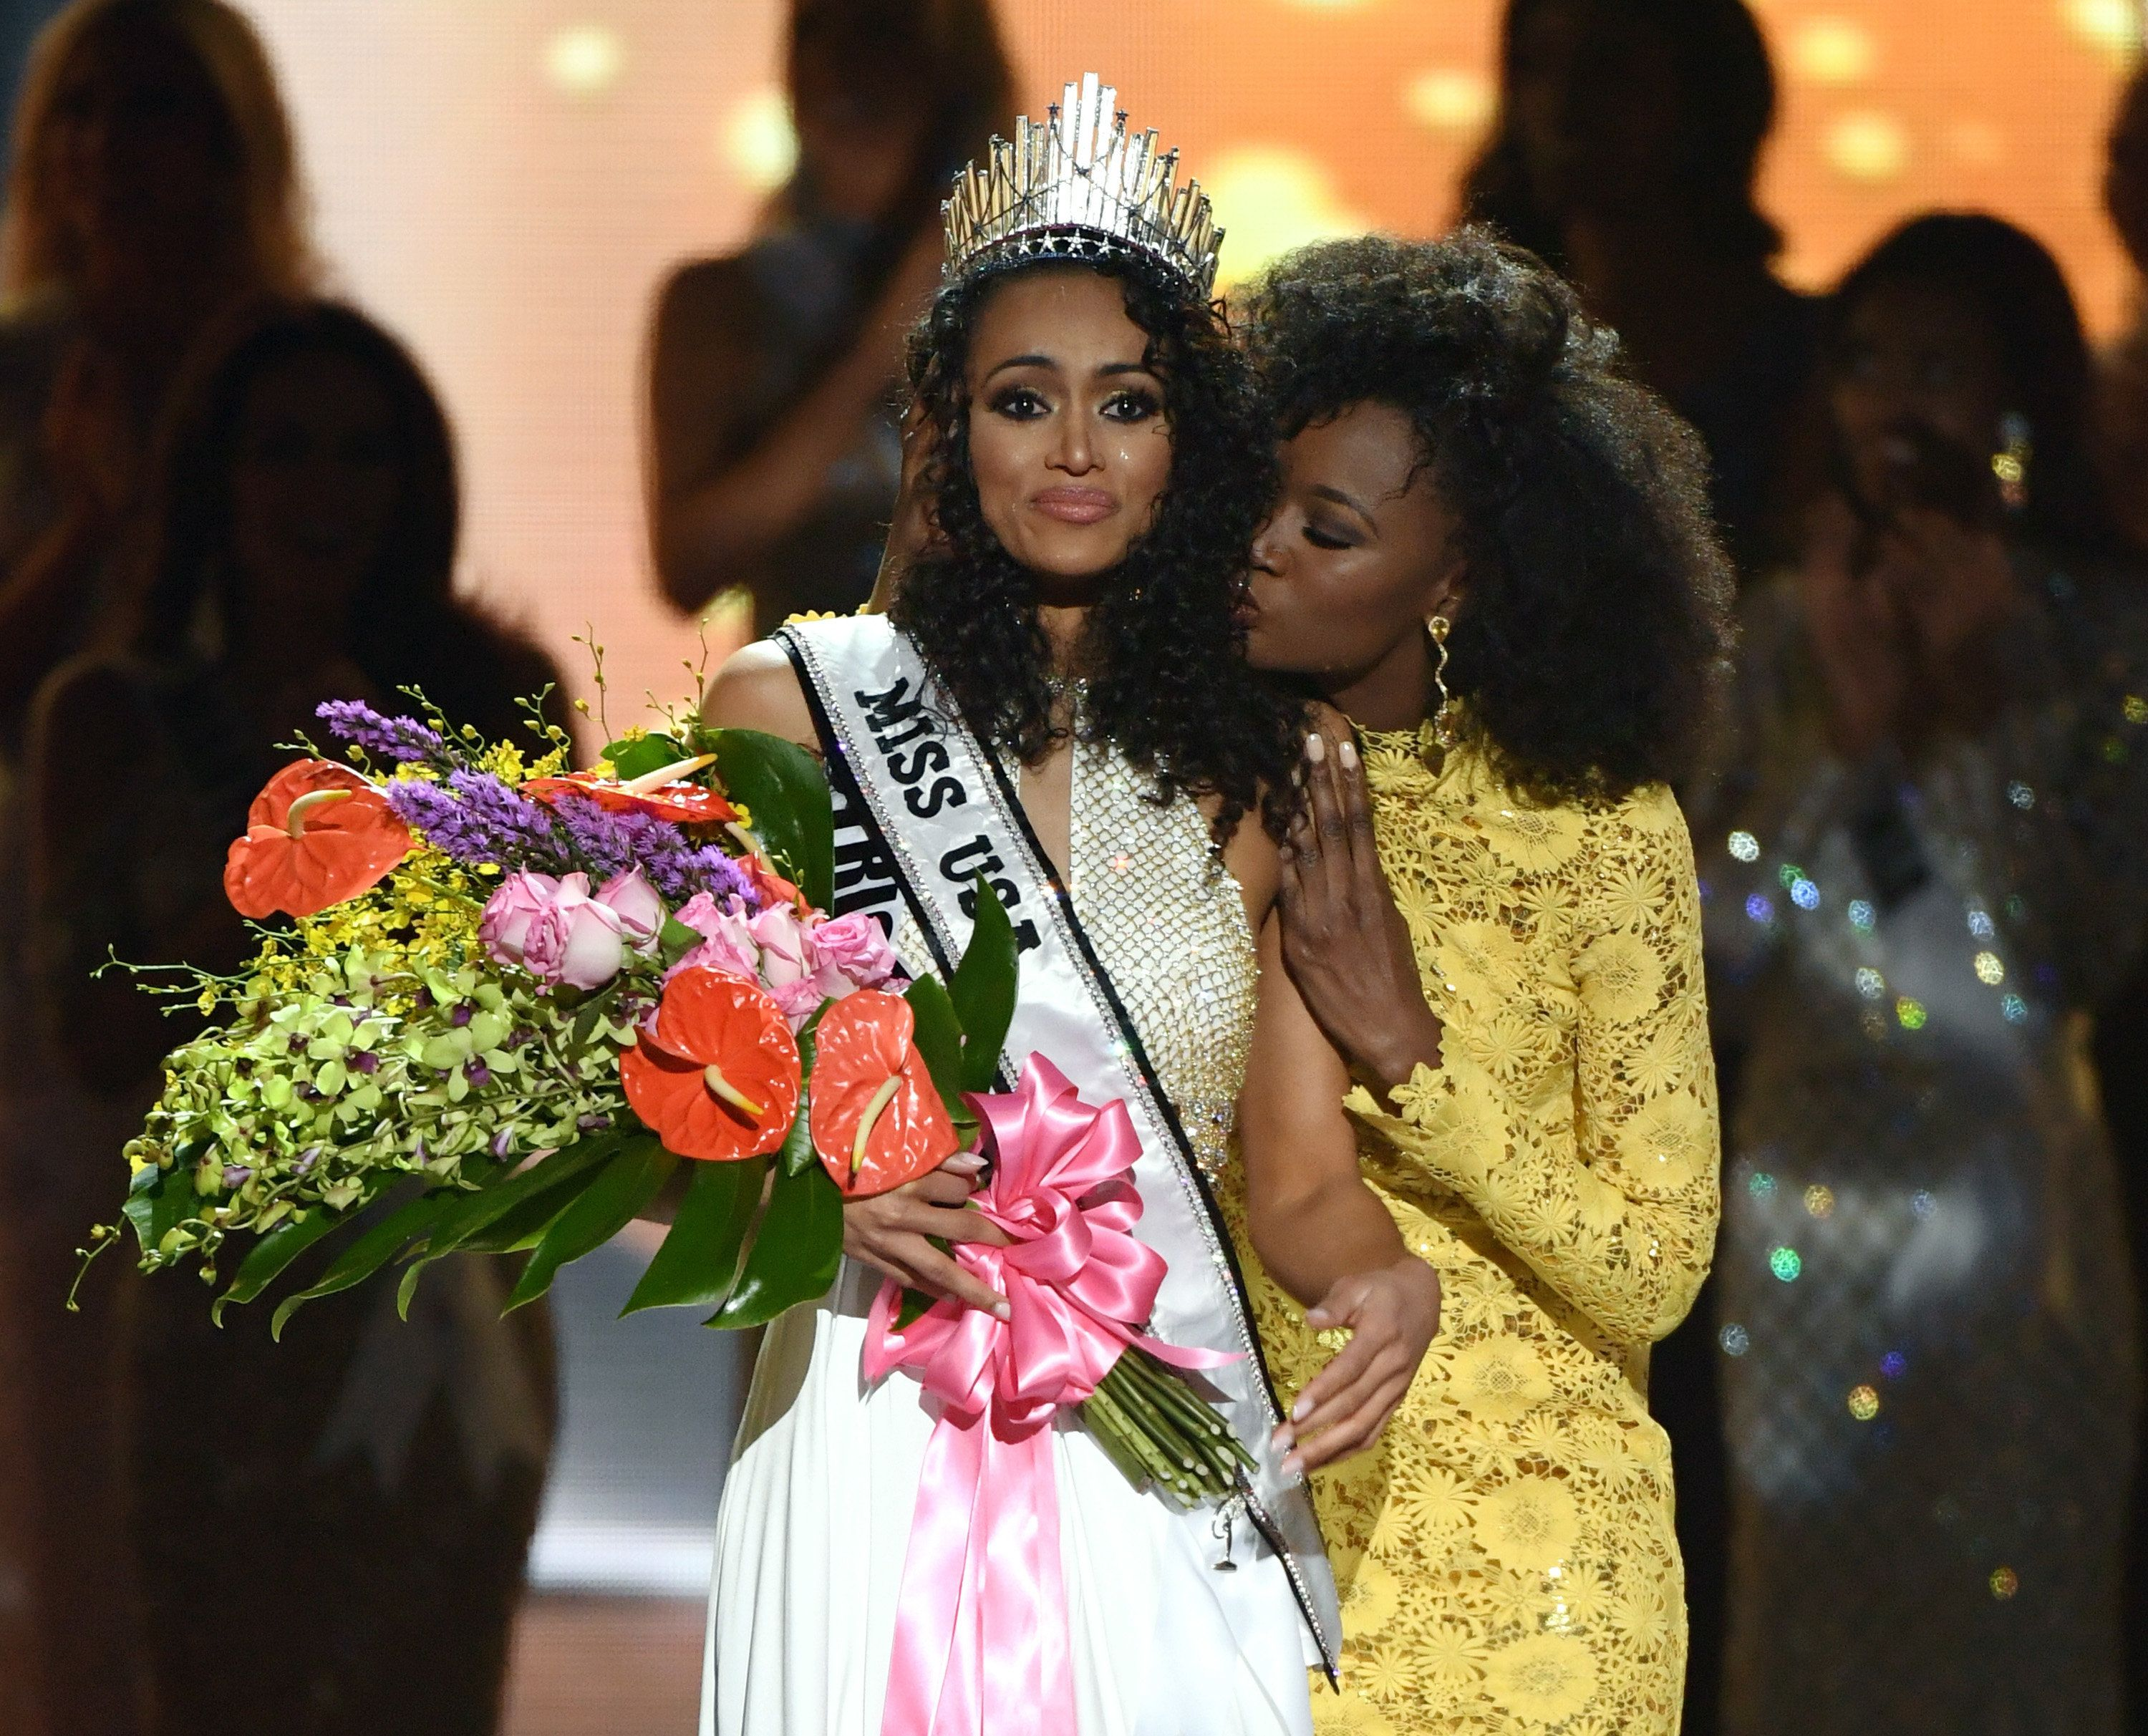 LAS VEGAS, NV - MAY 14:  Miss District of Columbia USA 2016 Kara McCullough (L) reacts as she is crowned Miss USA 2017 by Miss USA 2016 Deshauna Barber during the 2017 Miss USA pageant at the Mandalay Bay Events Center on May 14, 2017 in Las Vegas, Nevada.  (Photo by Ethan Miller/Getty Images)